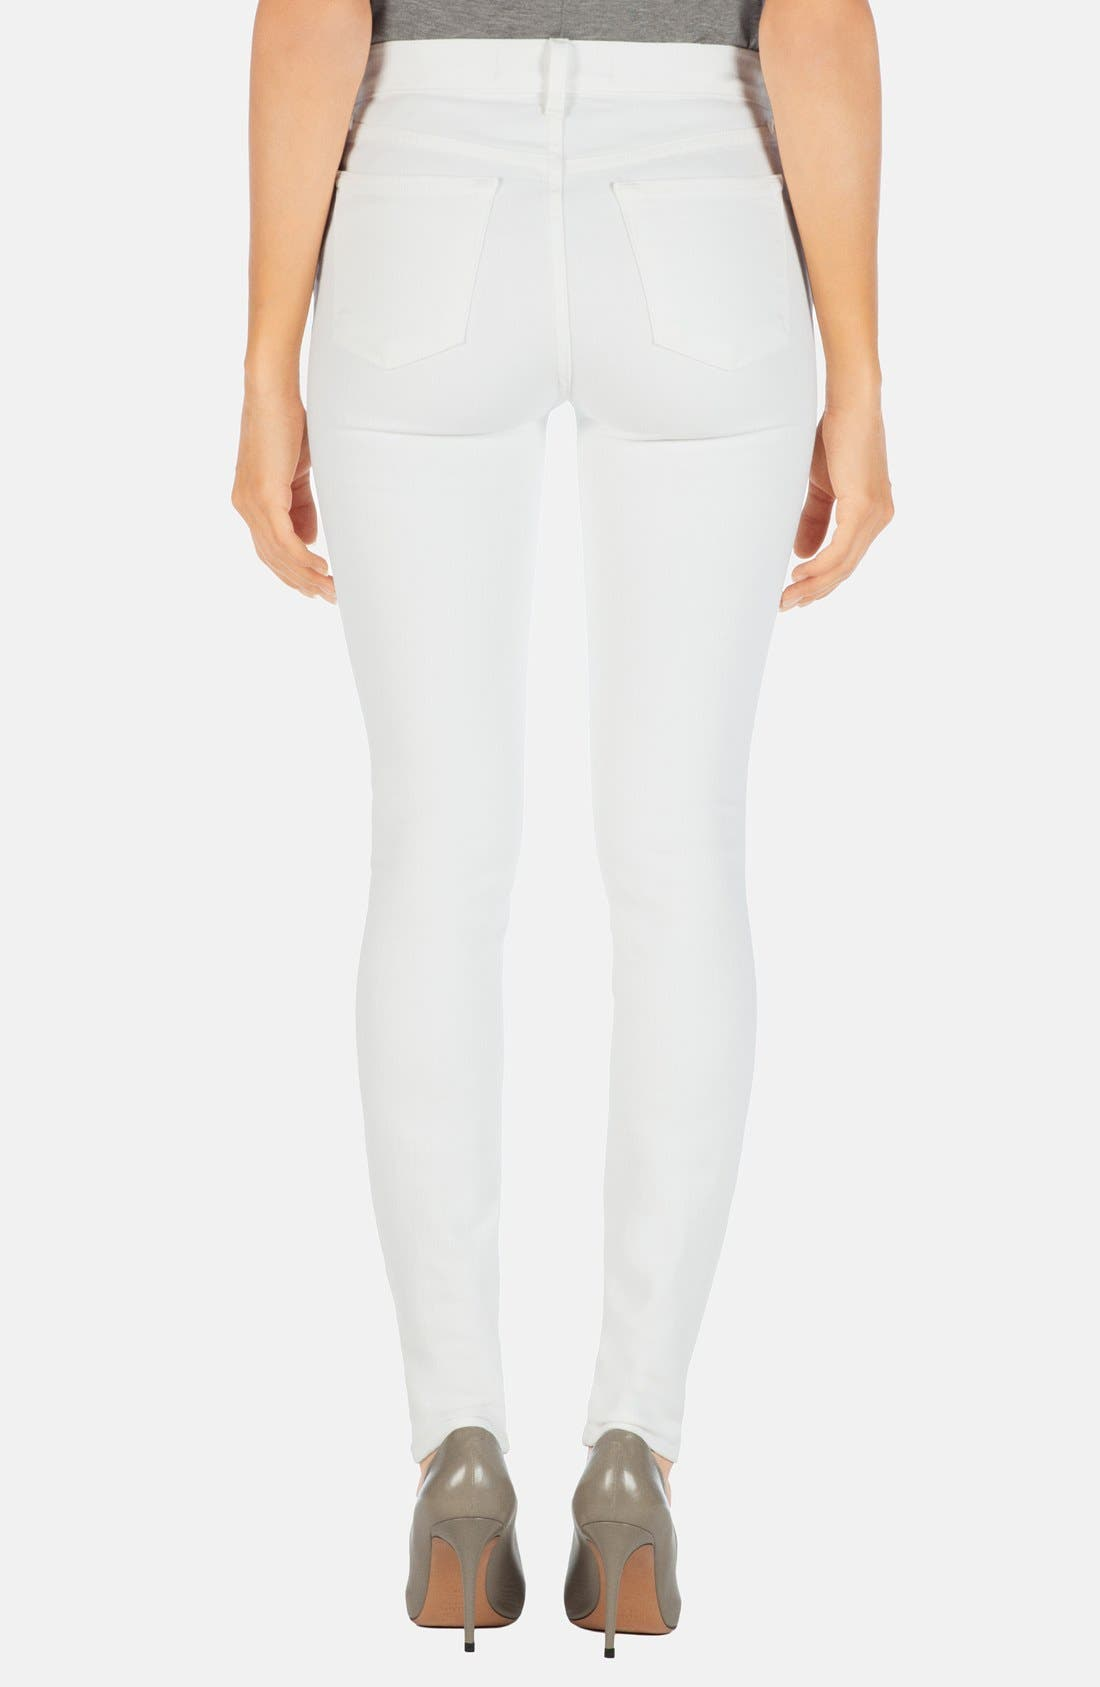 2311 Maria High Waist Super Skinny Jeans,                             Alternate thumbnail 9, color,                             BLANC